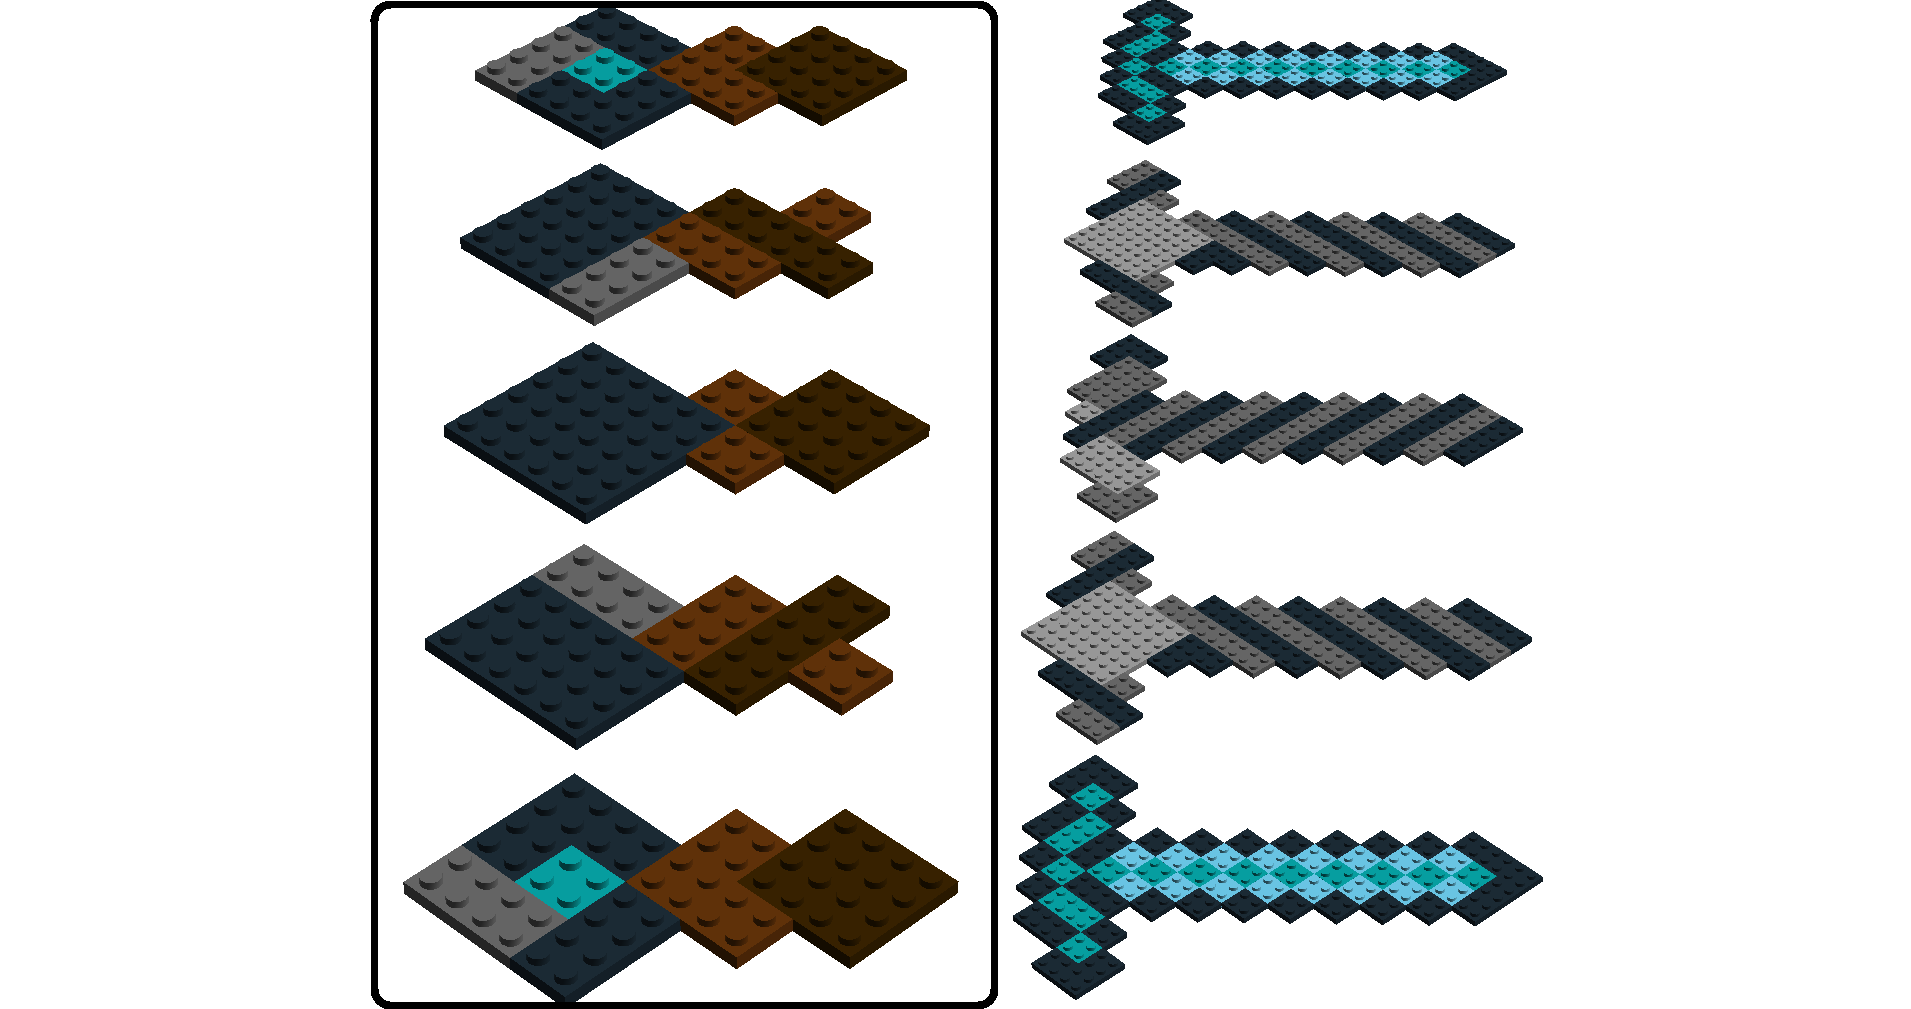 minecraft sword lego instructions